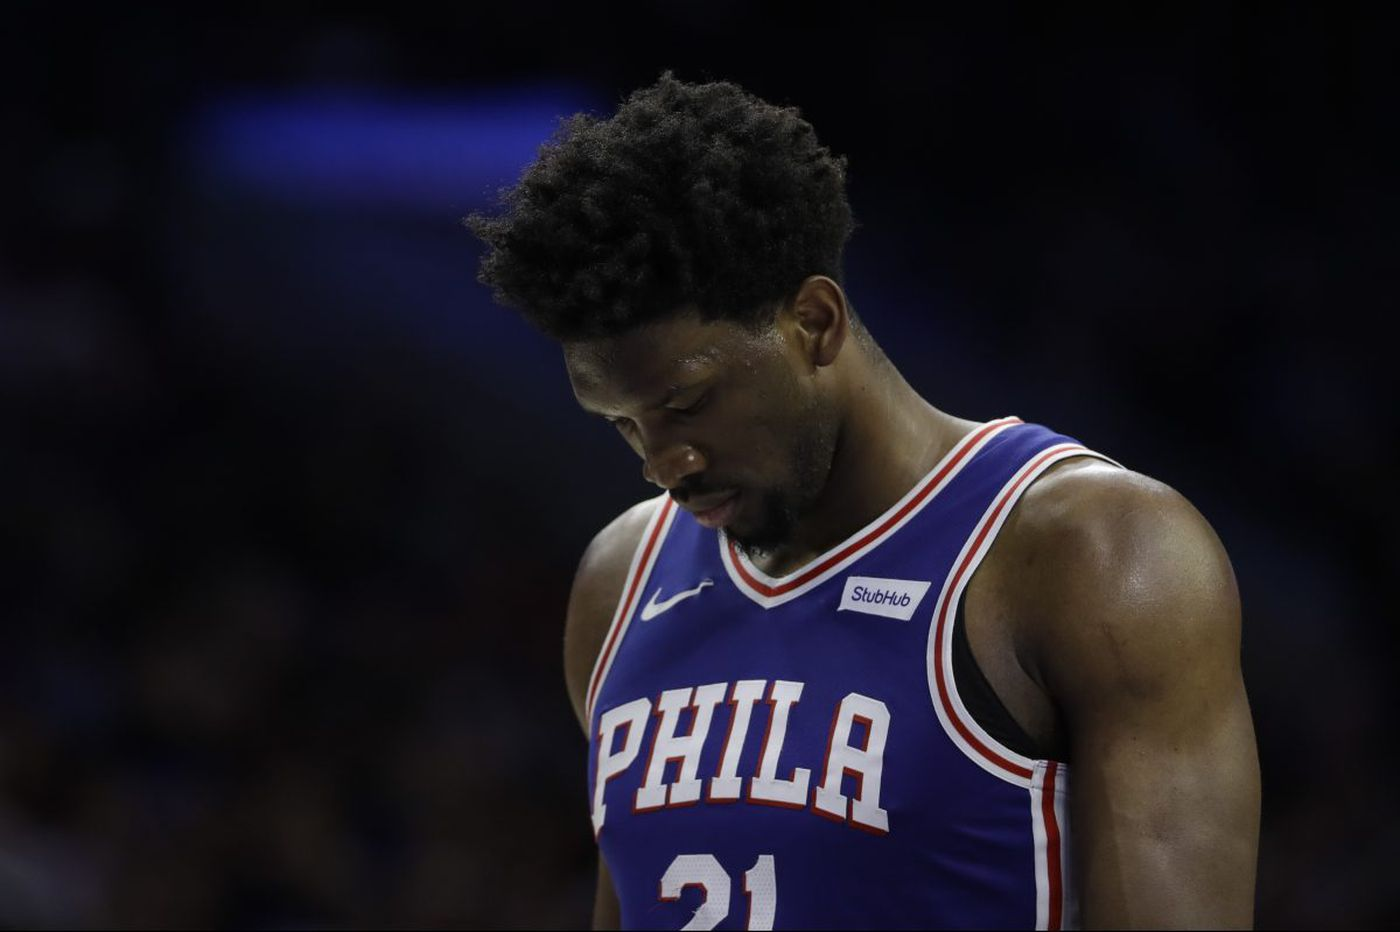 Sixers star needs surgery, S. Jersey church hires armed police, Nova Nation preps for Final Four | Morning Newsletter